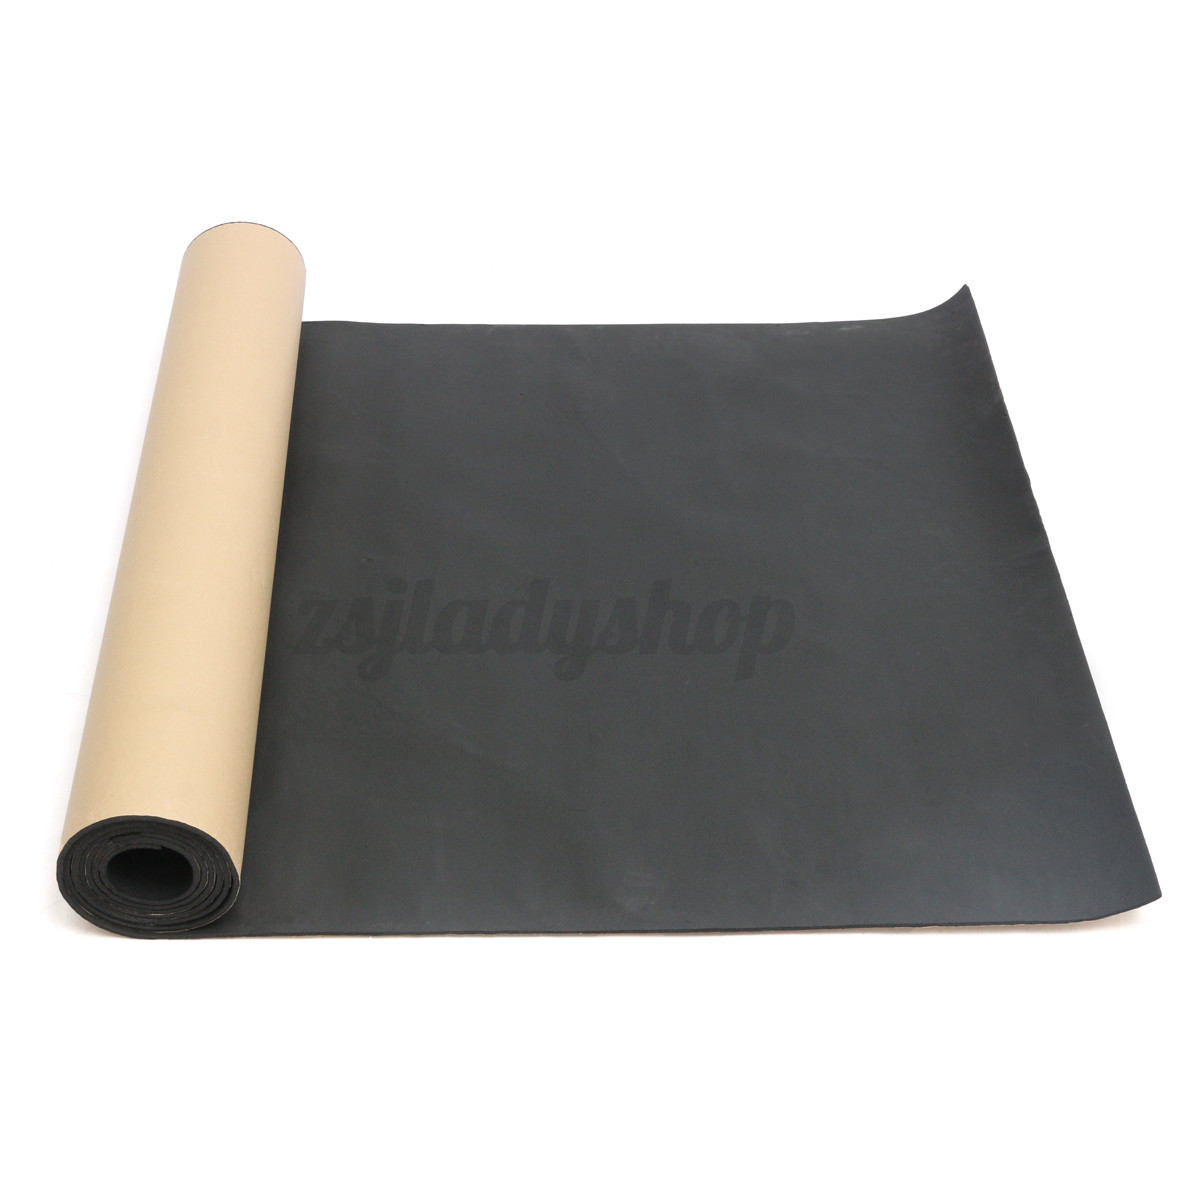 100x200cm 5mm Car Van Sound Proofing Deadening Absorb